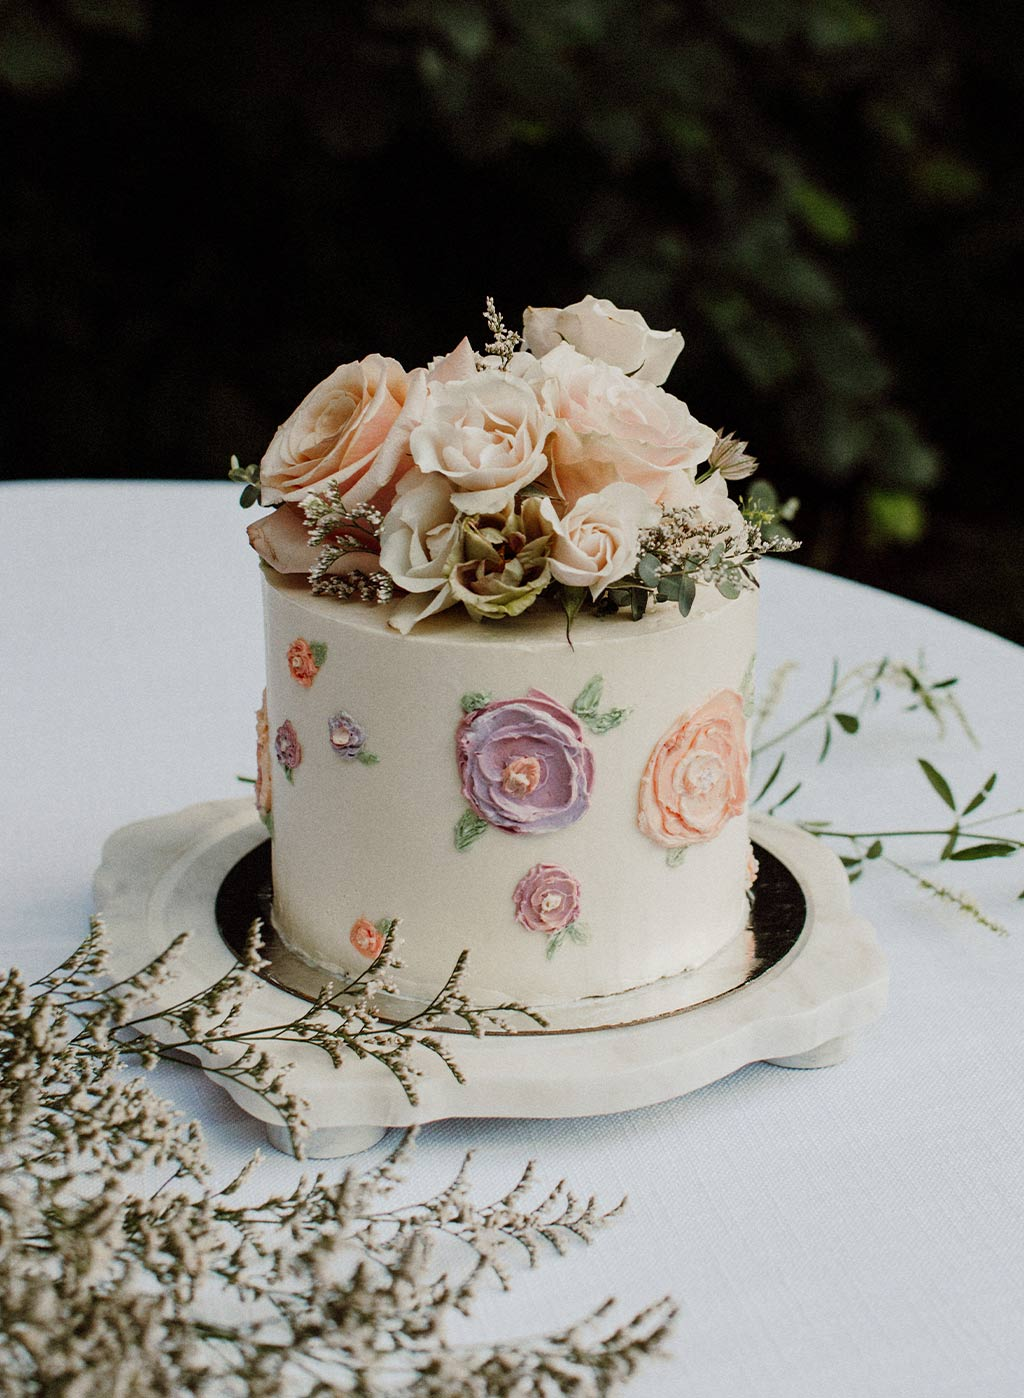 Wedding Cake with Flower Decorations